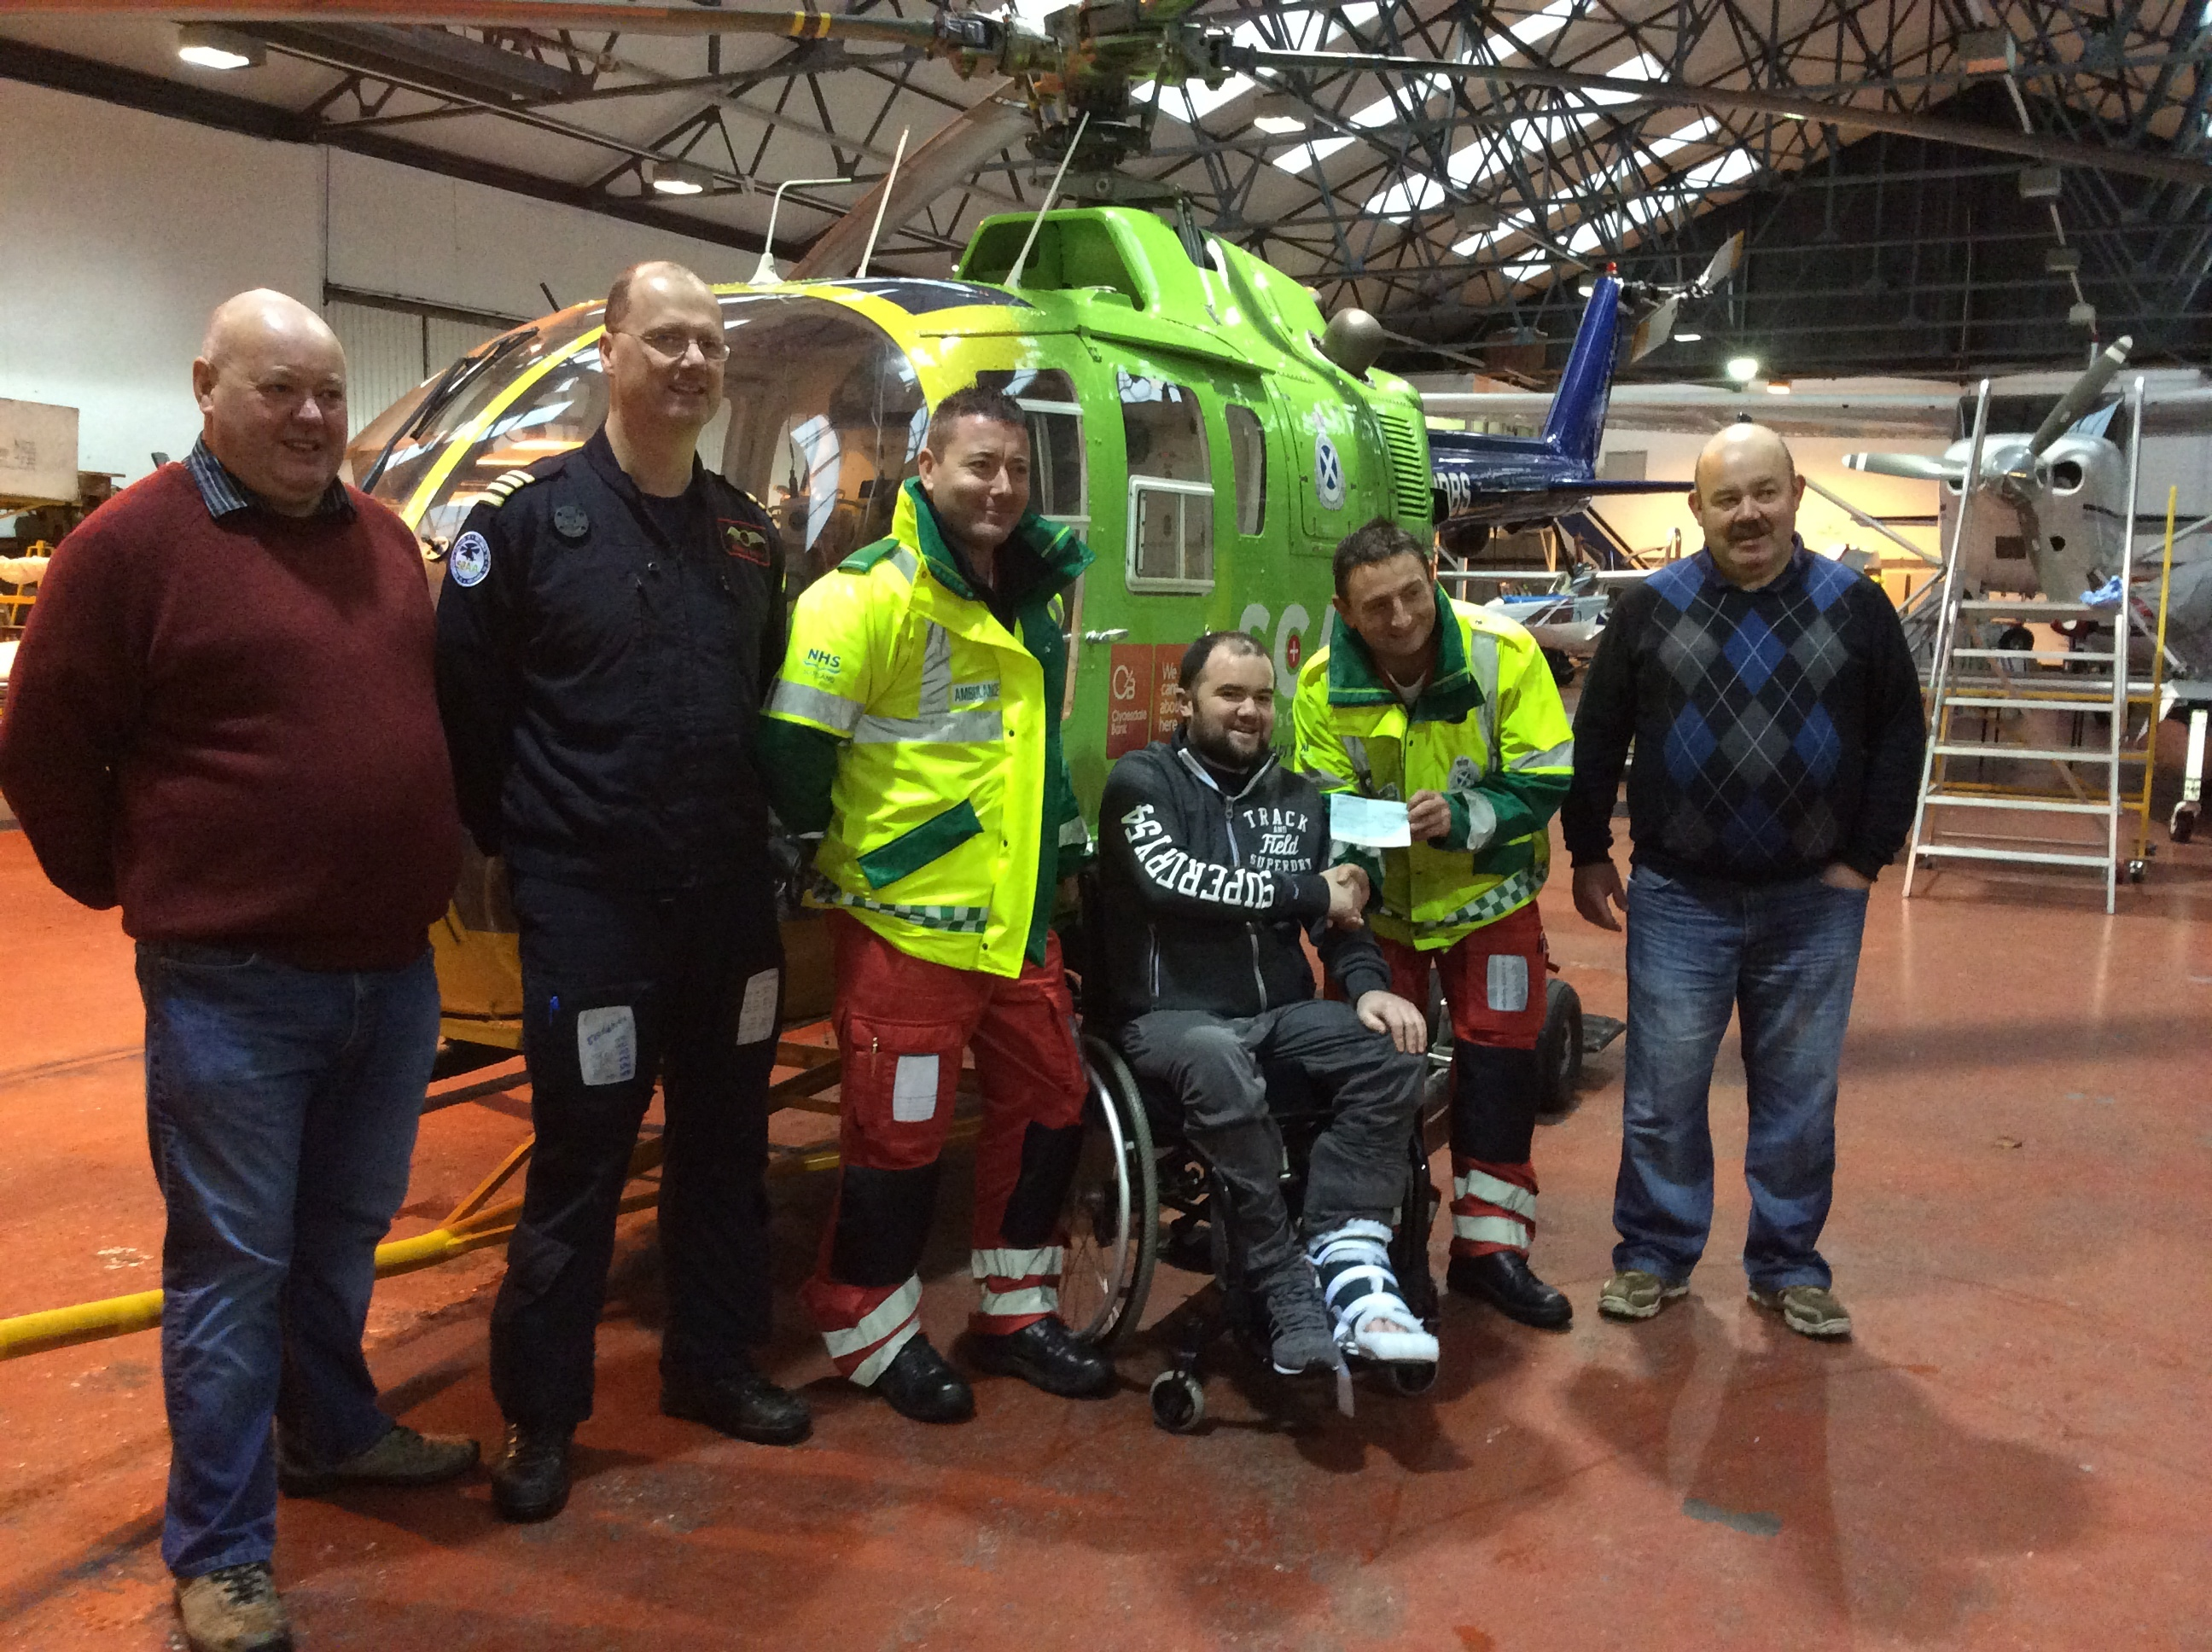 Grant Morrison with the men from Scotland's Air Ambulance Charity who flew him to ARI after his accident